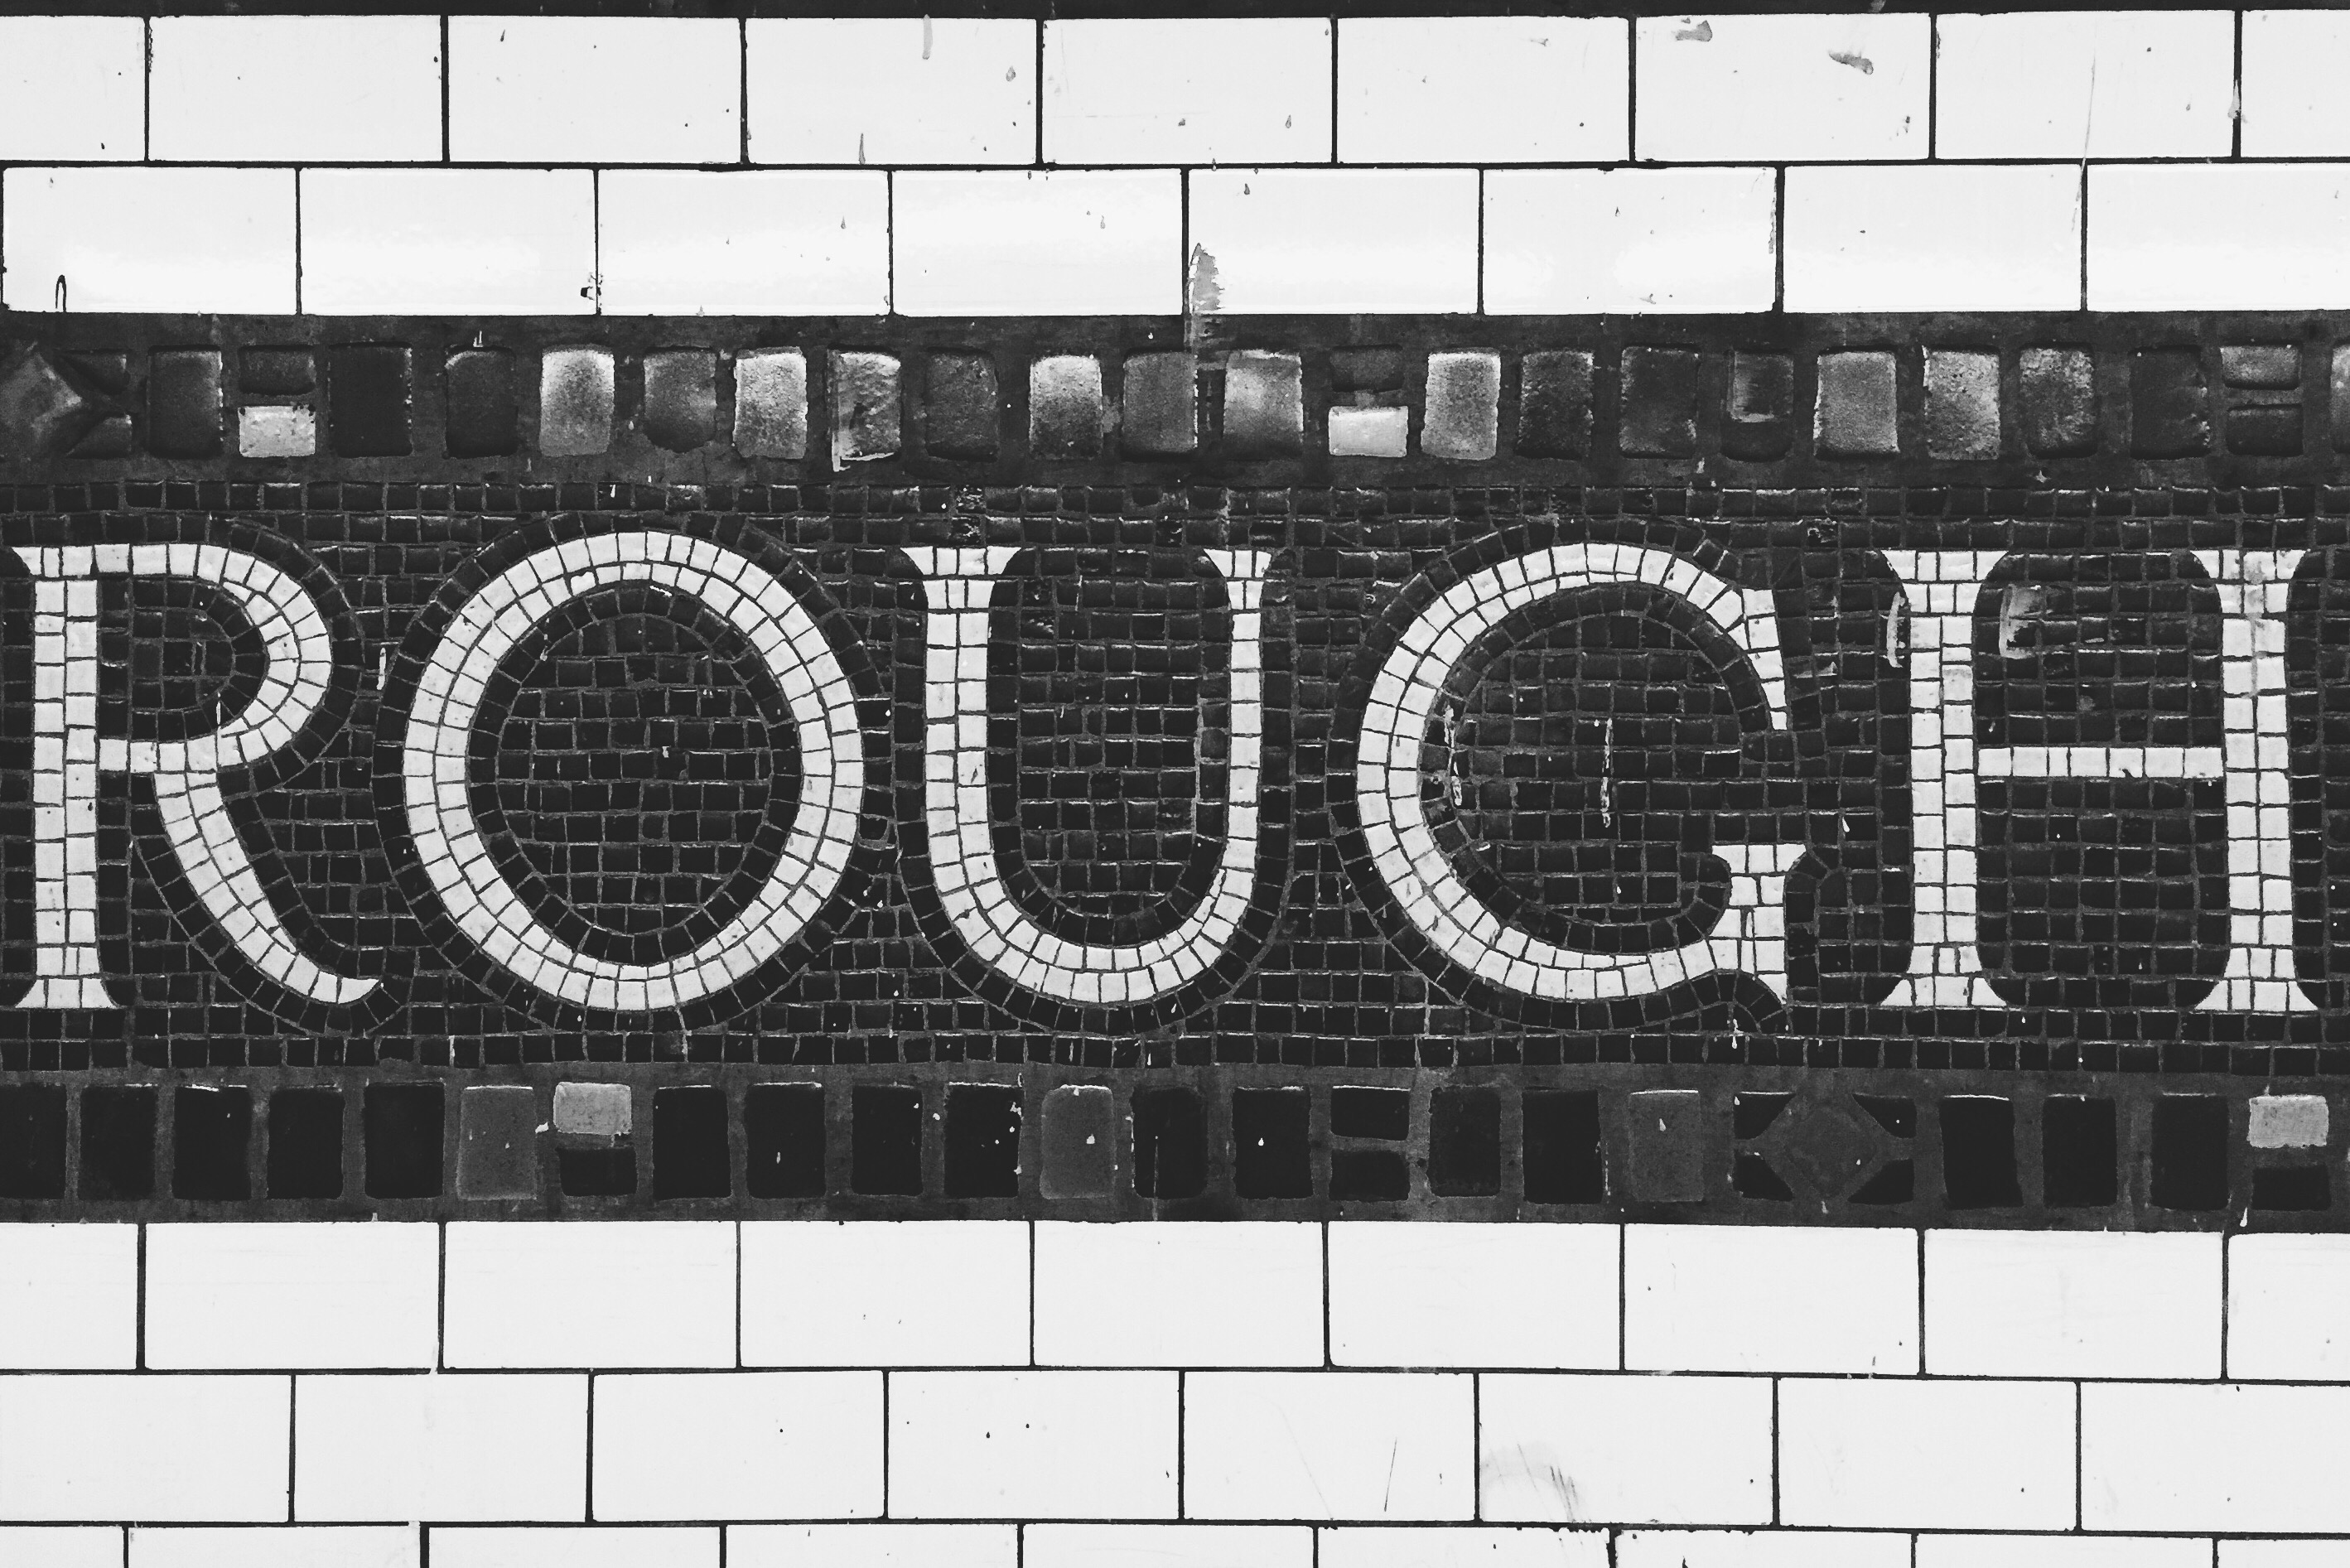 Rough in the tiles